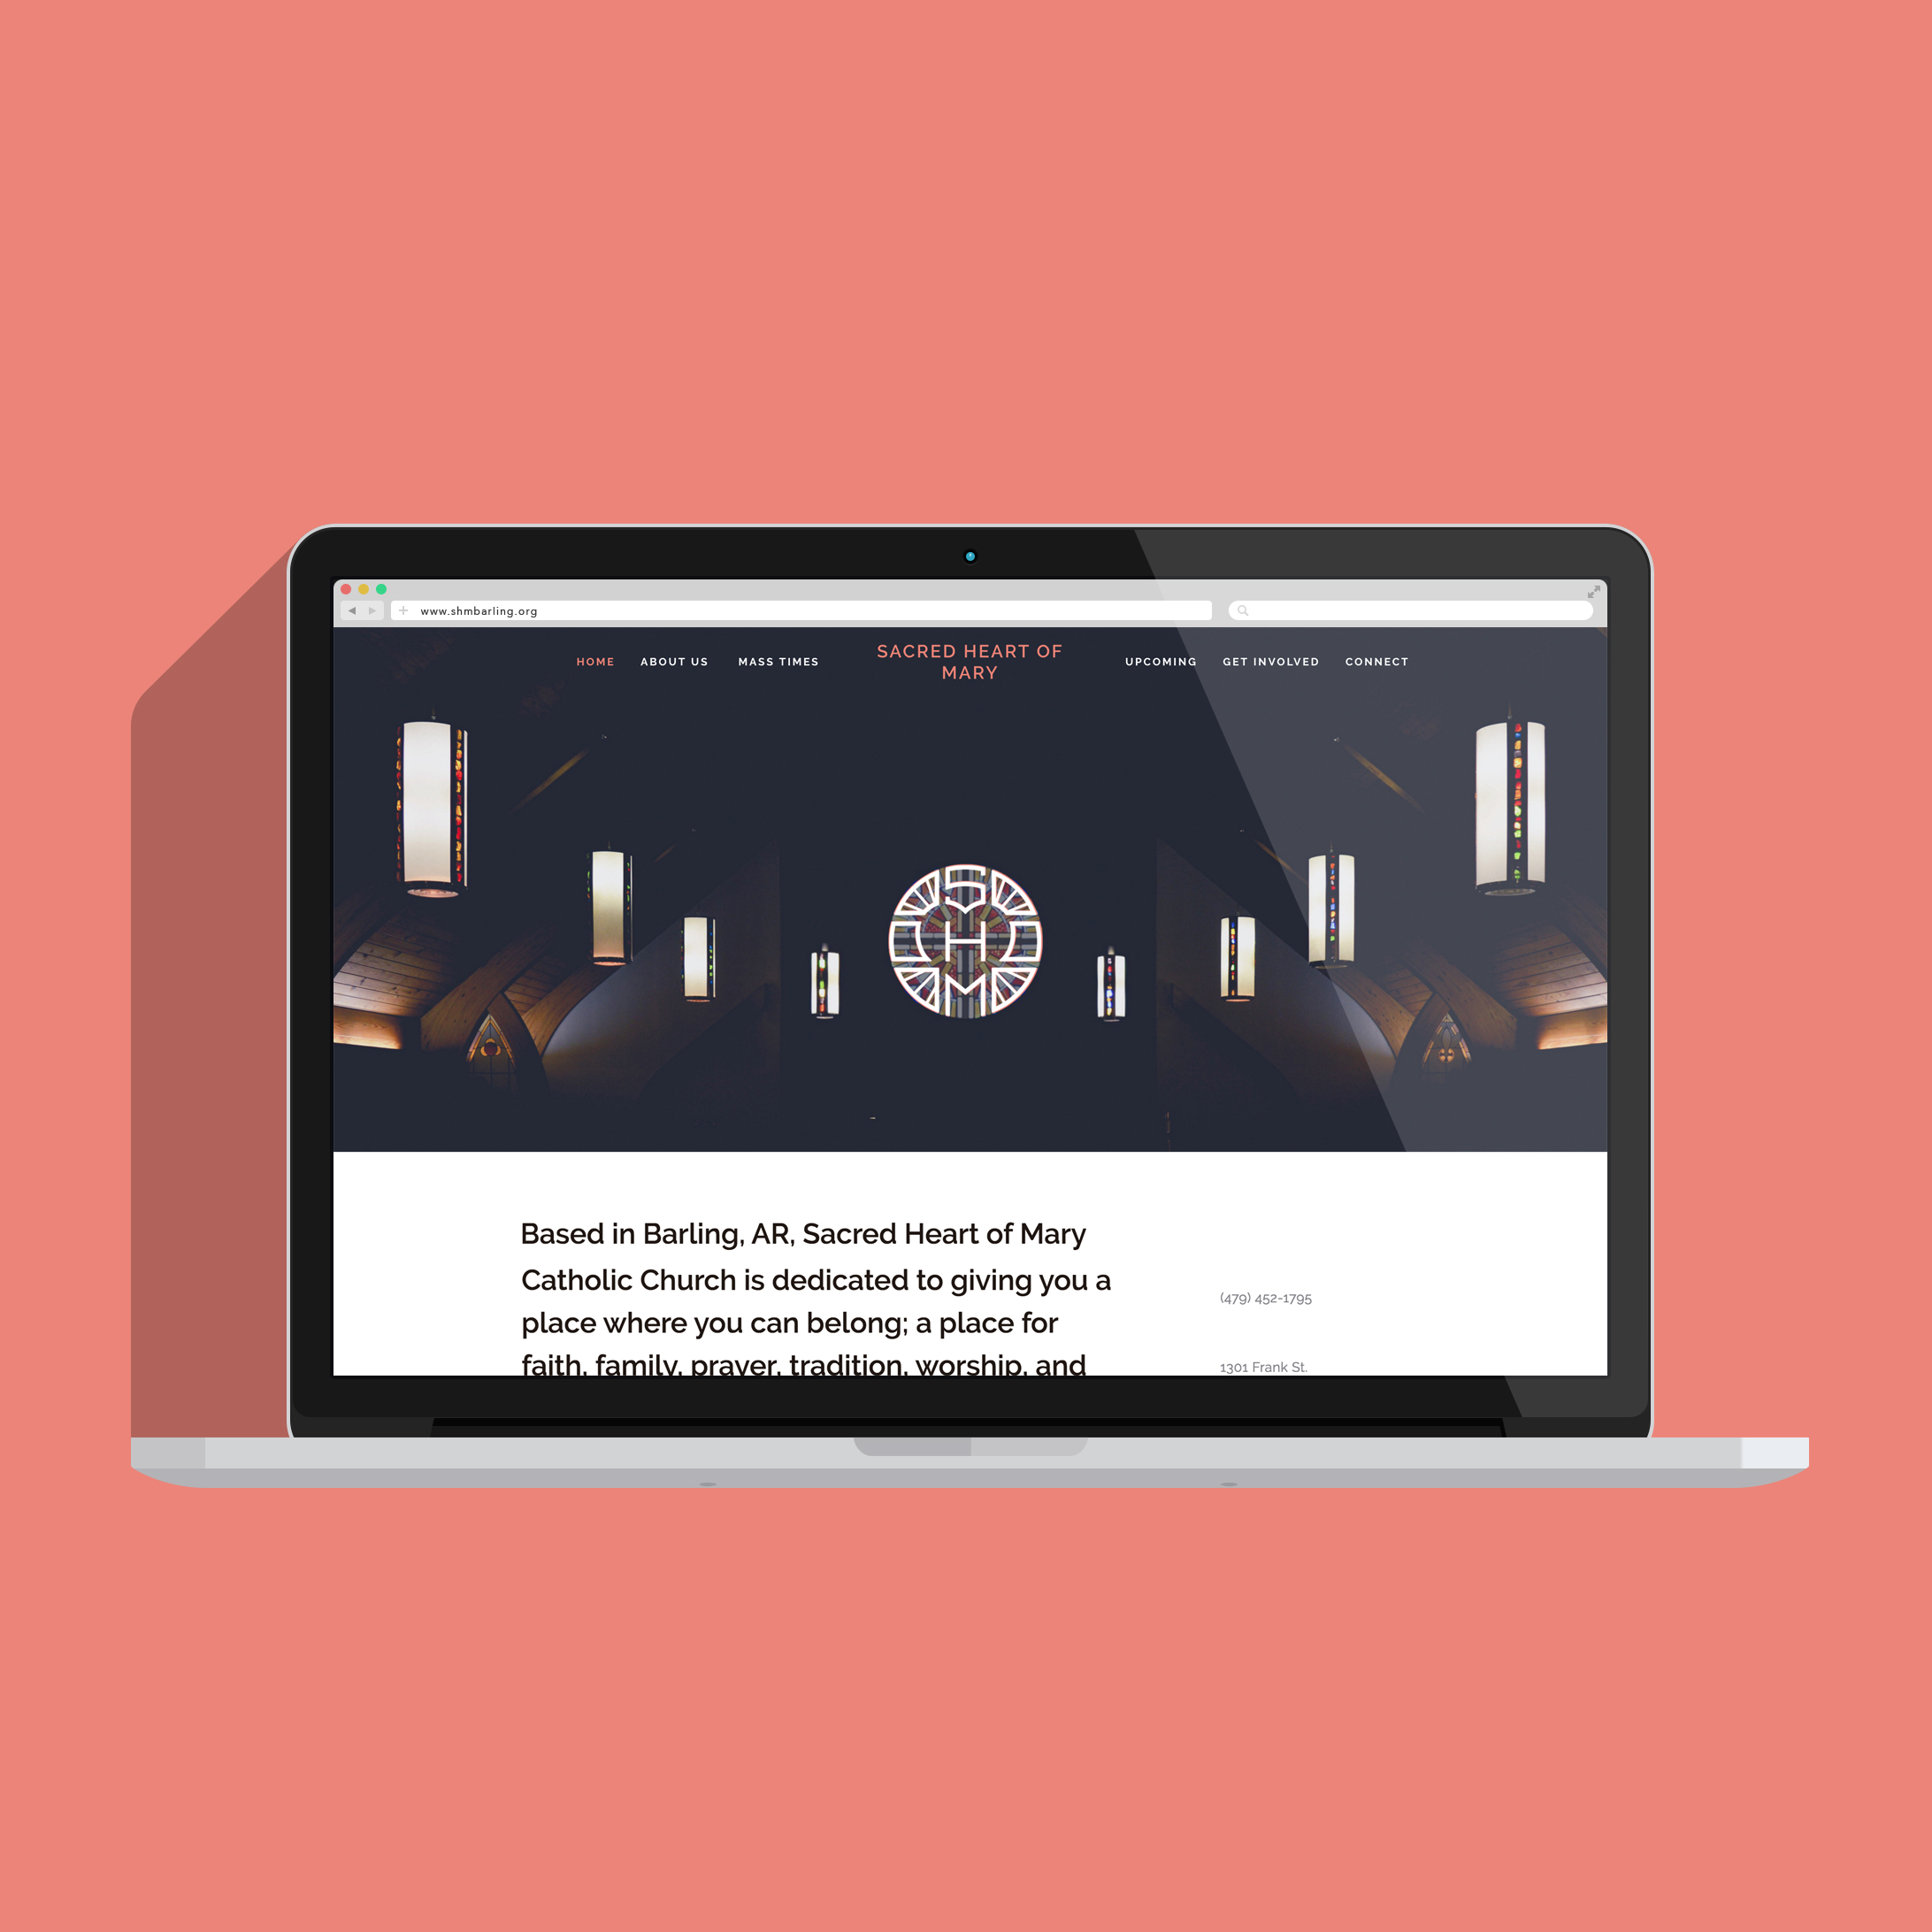 SHM Website Mockup Sq.jpg